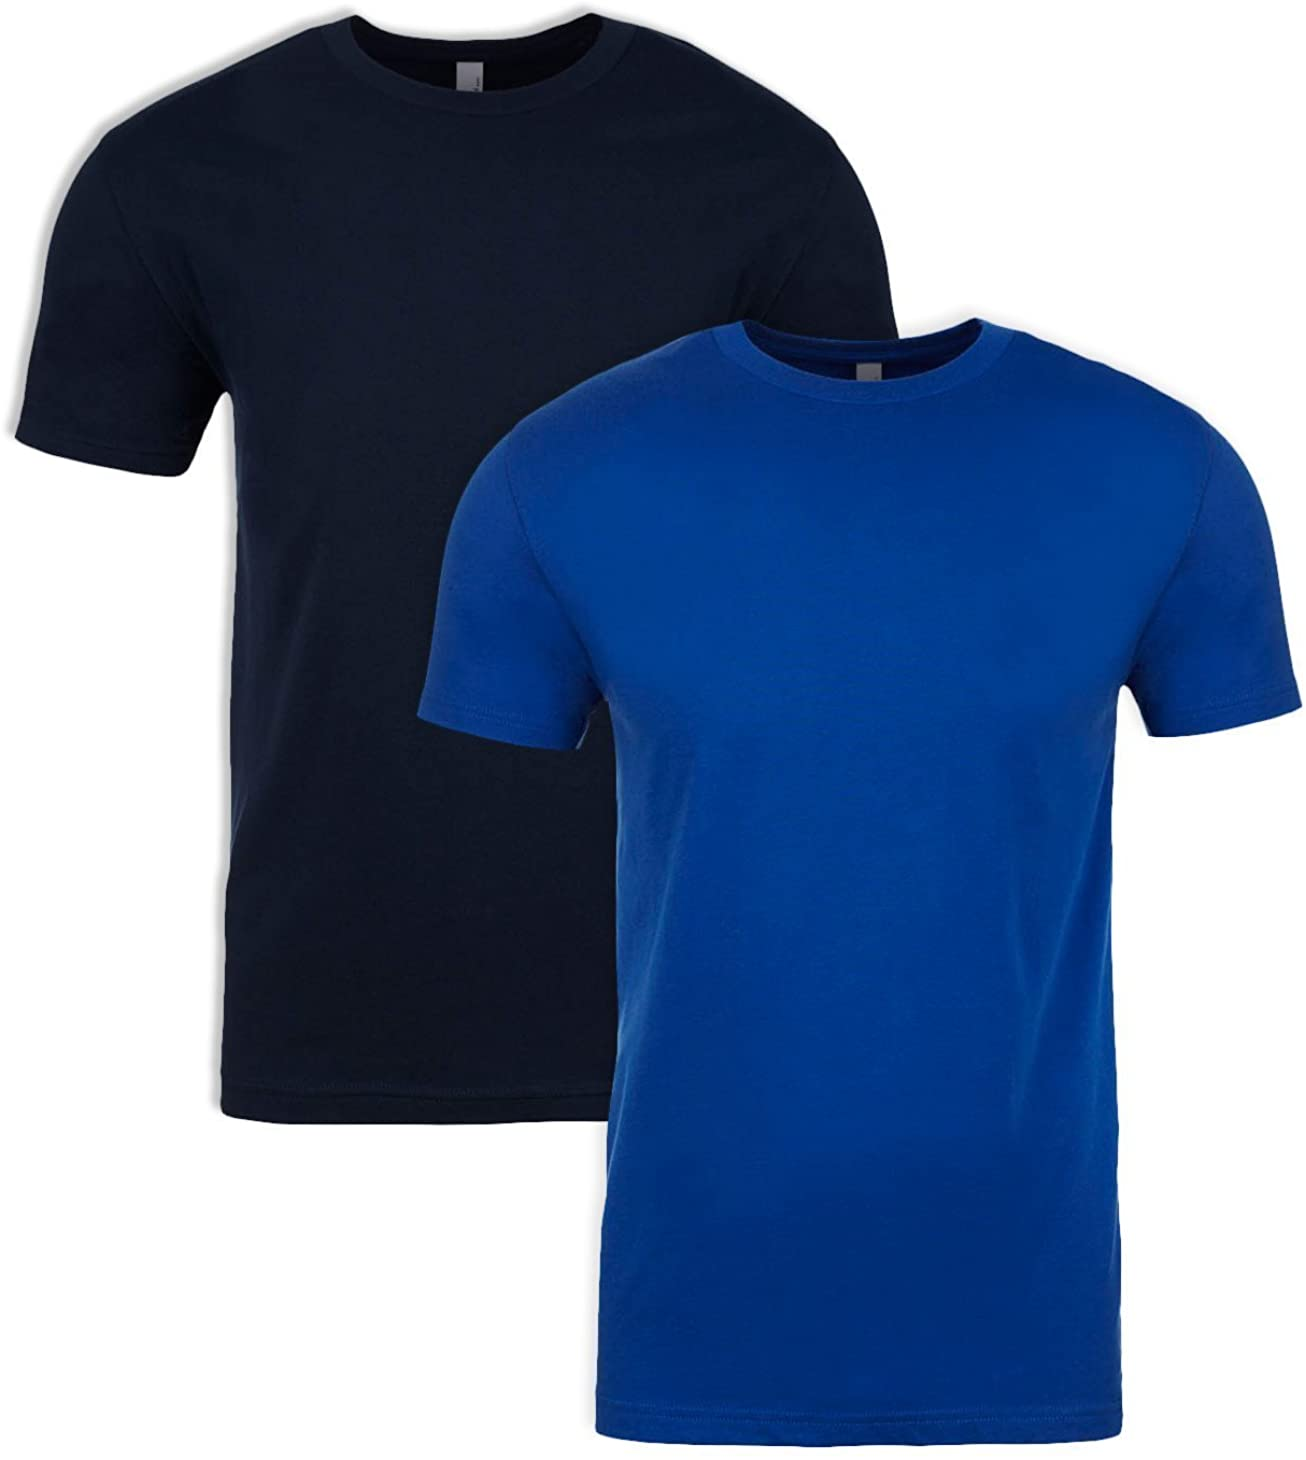 Next Level N6210 T-Shirt, Midnight + Royal (2 Pack), Large